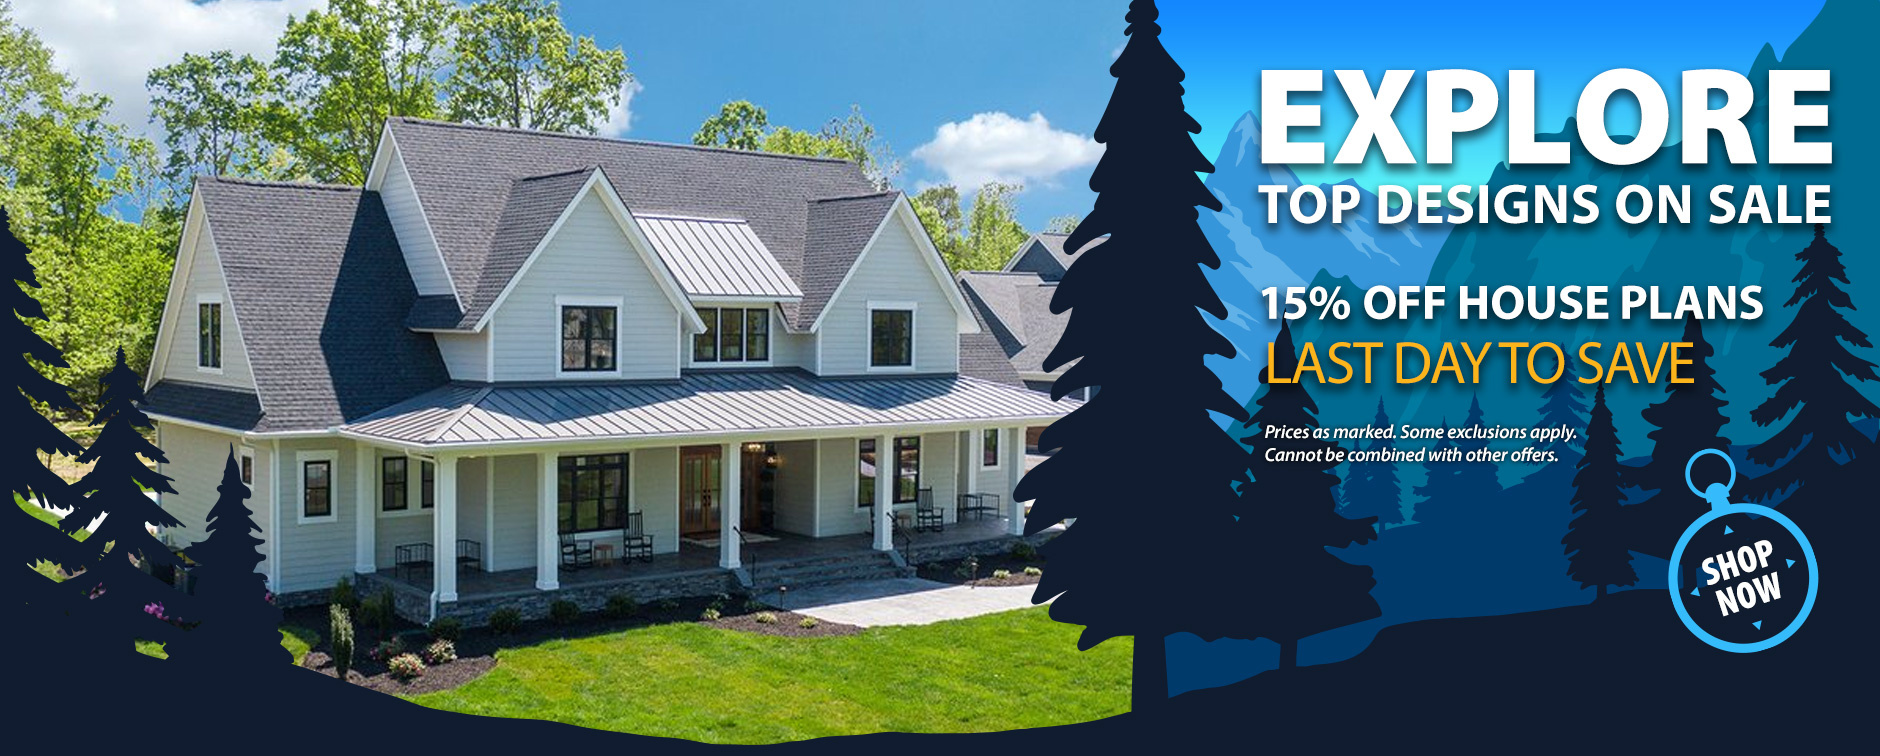 House Plan Sale 15% Off Last Day